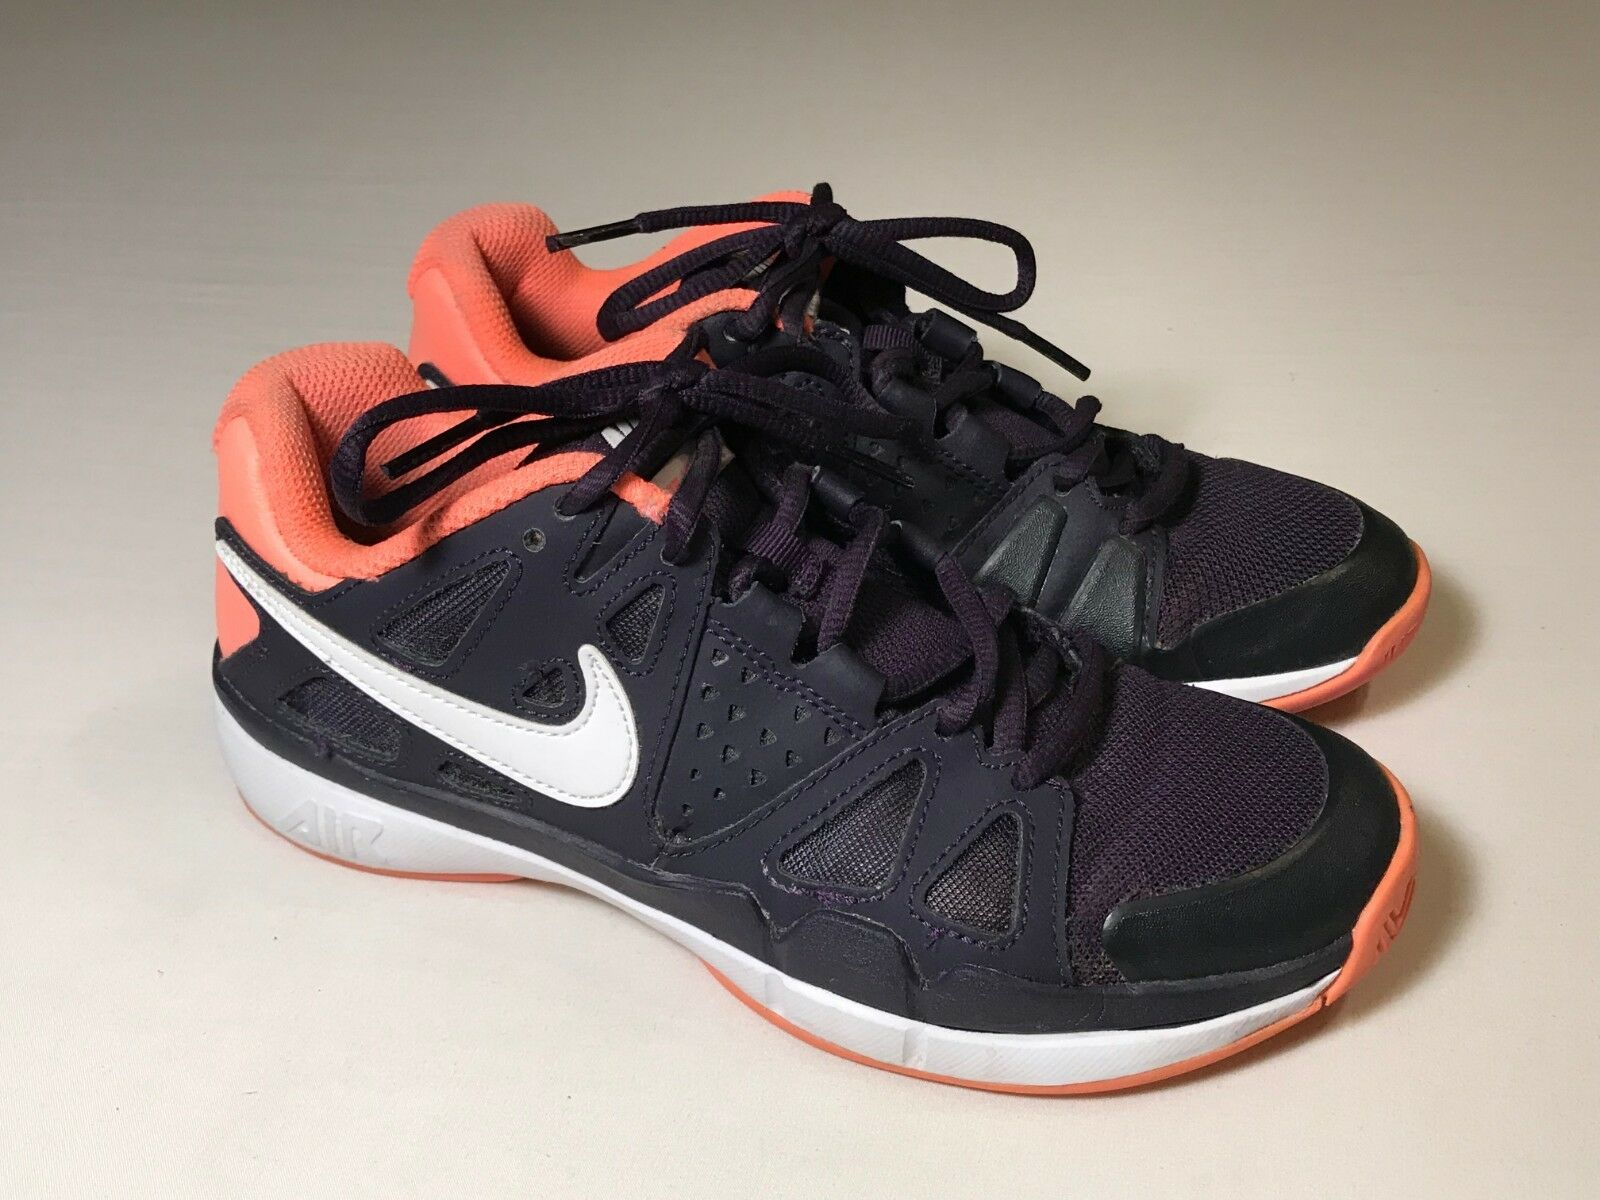 Nike Multi-Color Air Vapor Advantage (599364-500) Multi-Color Nike Tennis Shoes Women Size 6 61840c